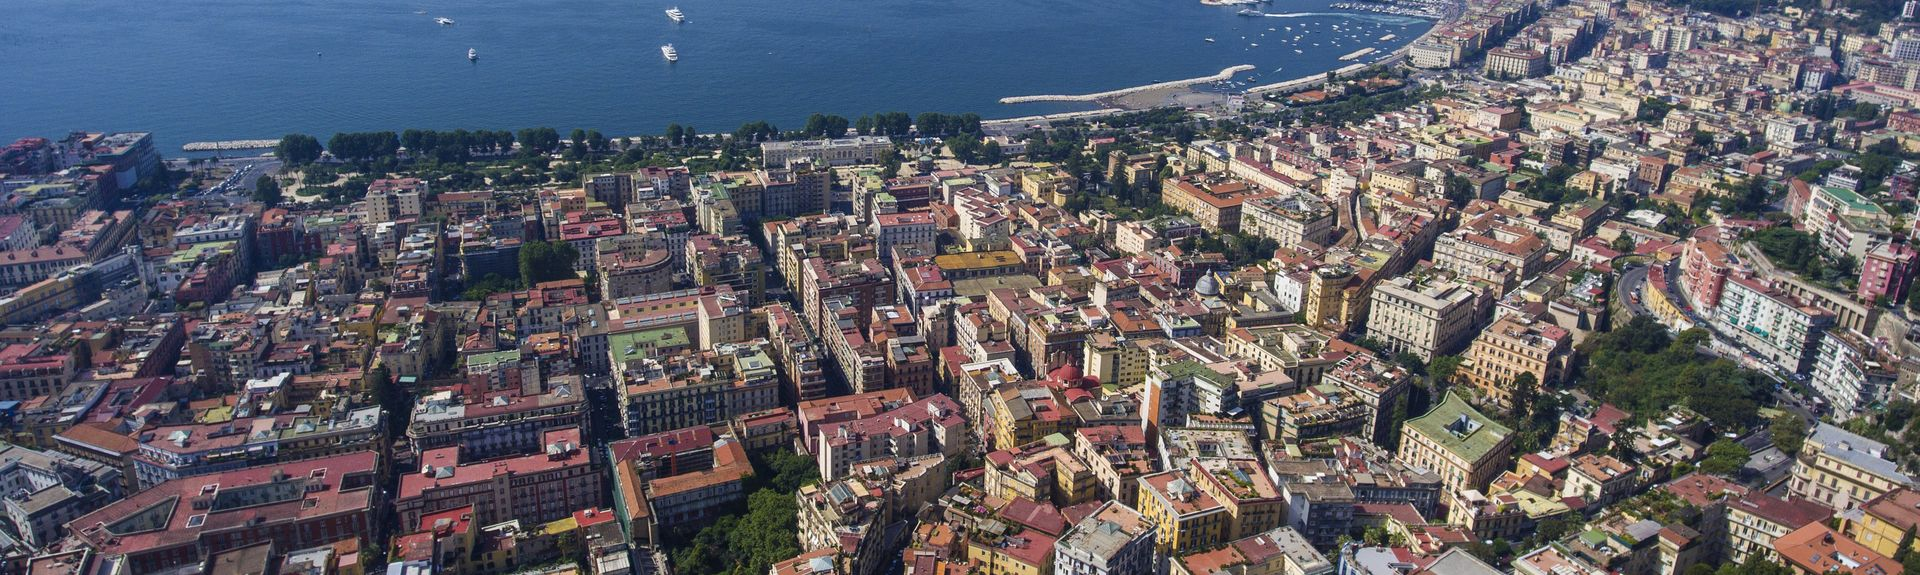 Metropolitan City of Naples, Italy